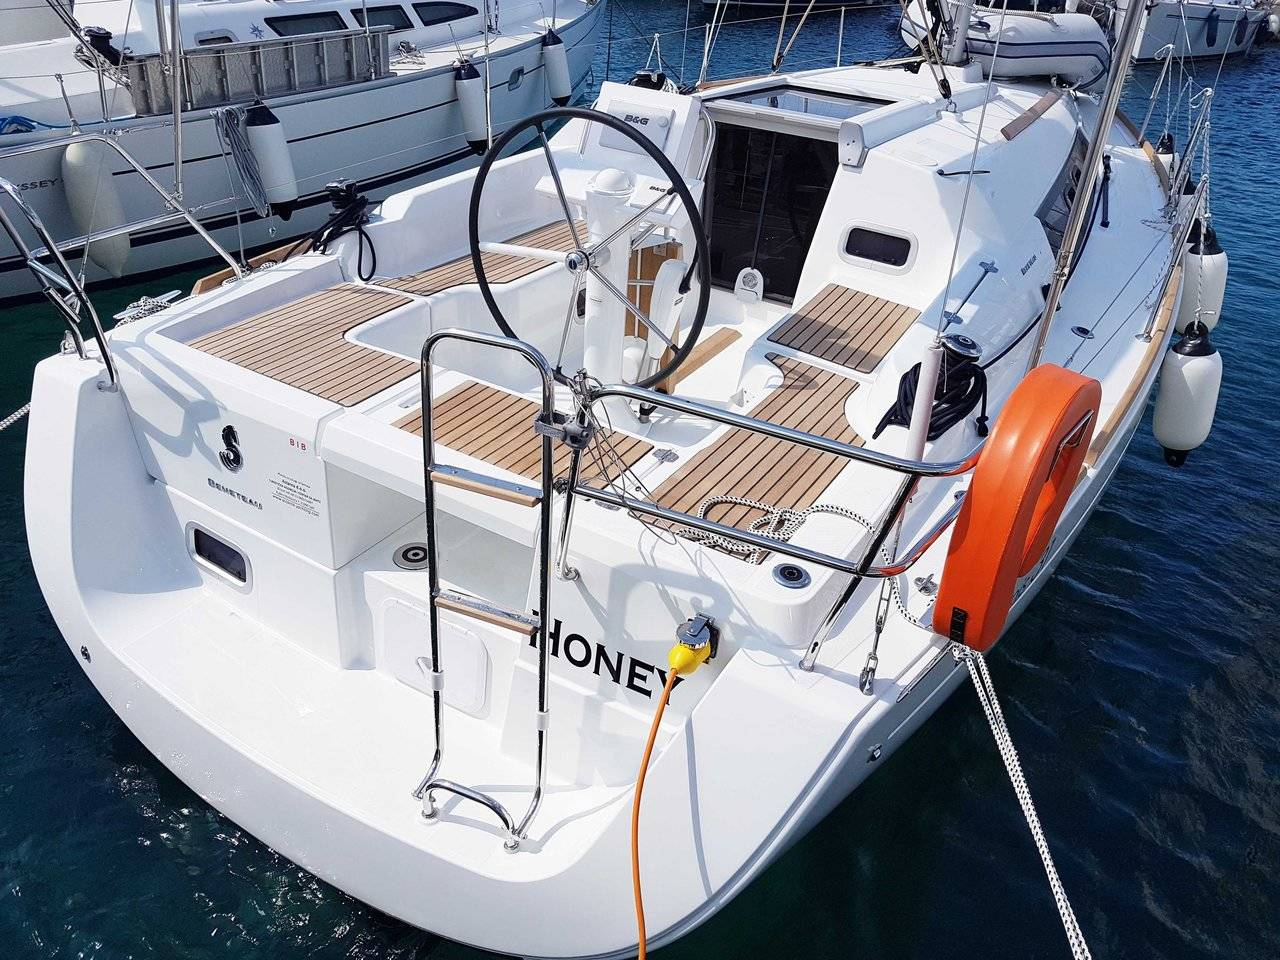 Oceanis 31, HONEY